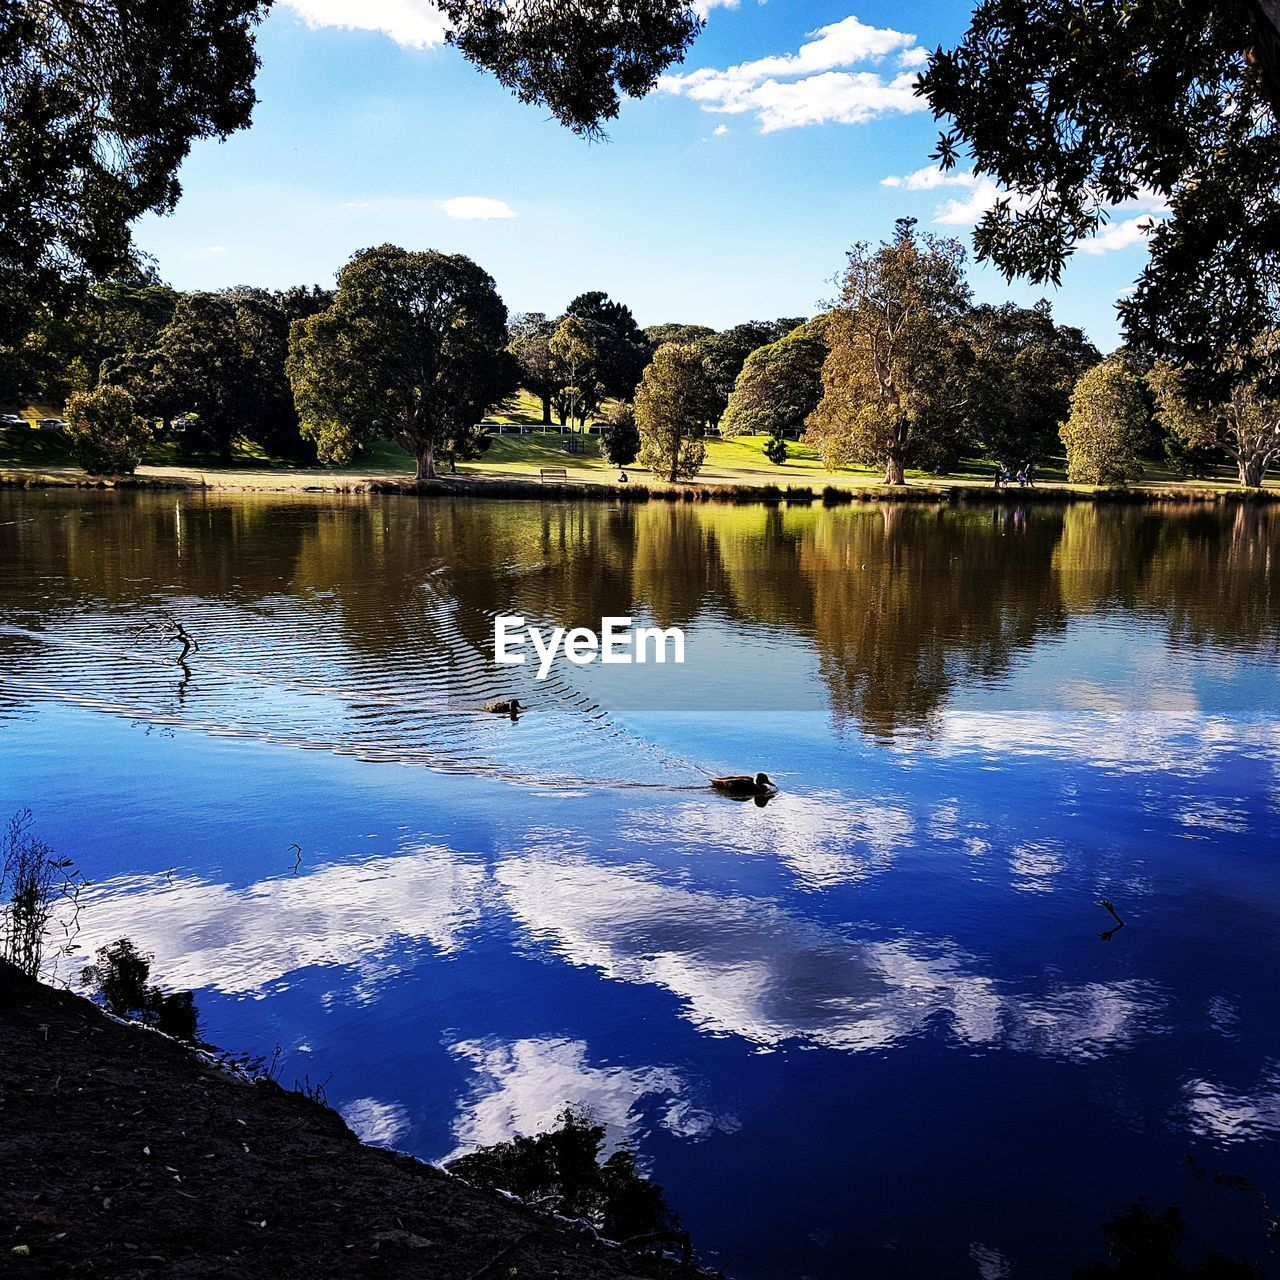 water, lake, tree, bird, animal, animal themes, animals in the wild, animal wildlife, vertebrate, reflection, plant, tranquility, sky, group of animals, nature, beauty in nature, tranquil scene, swimming, no people, duck, outdoors